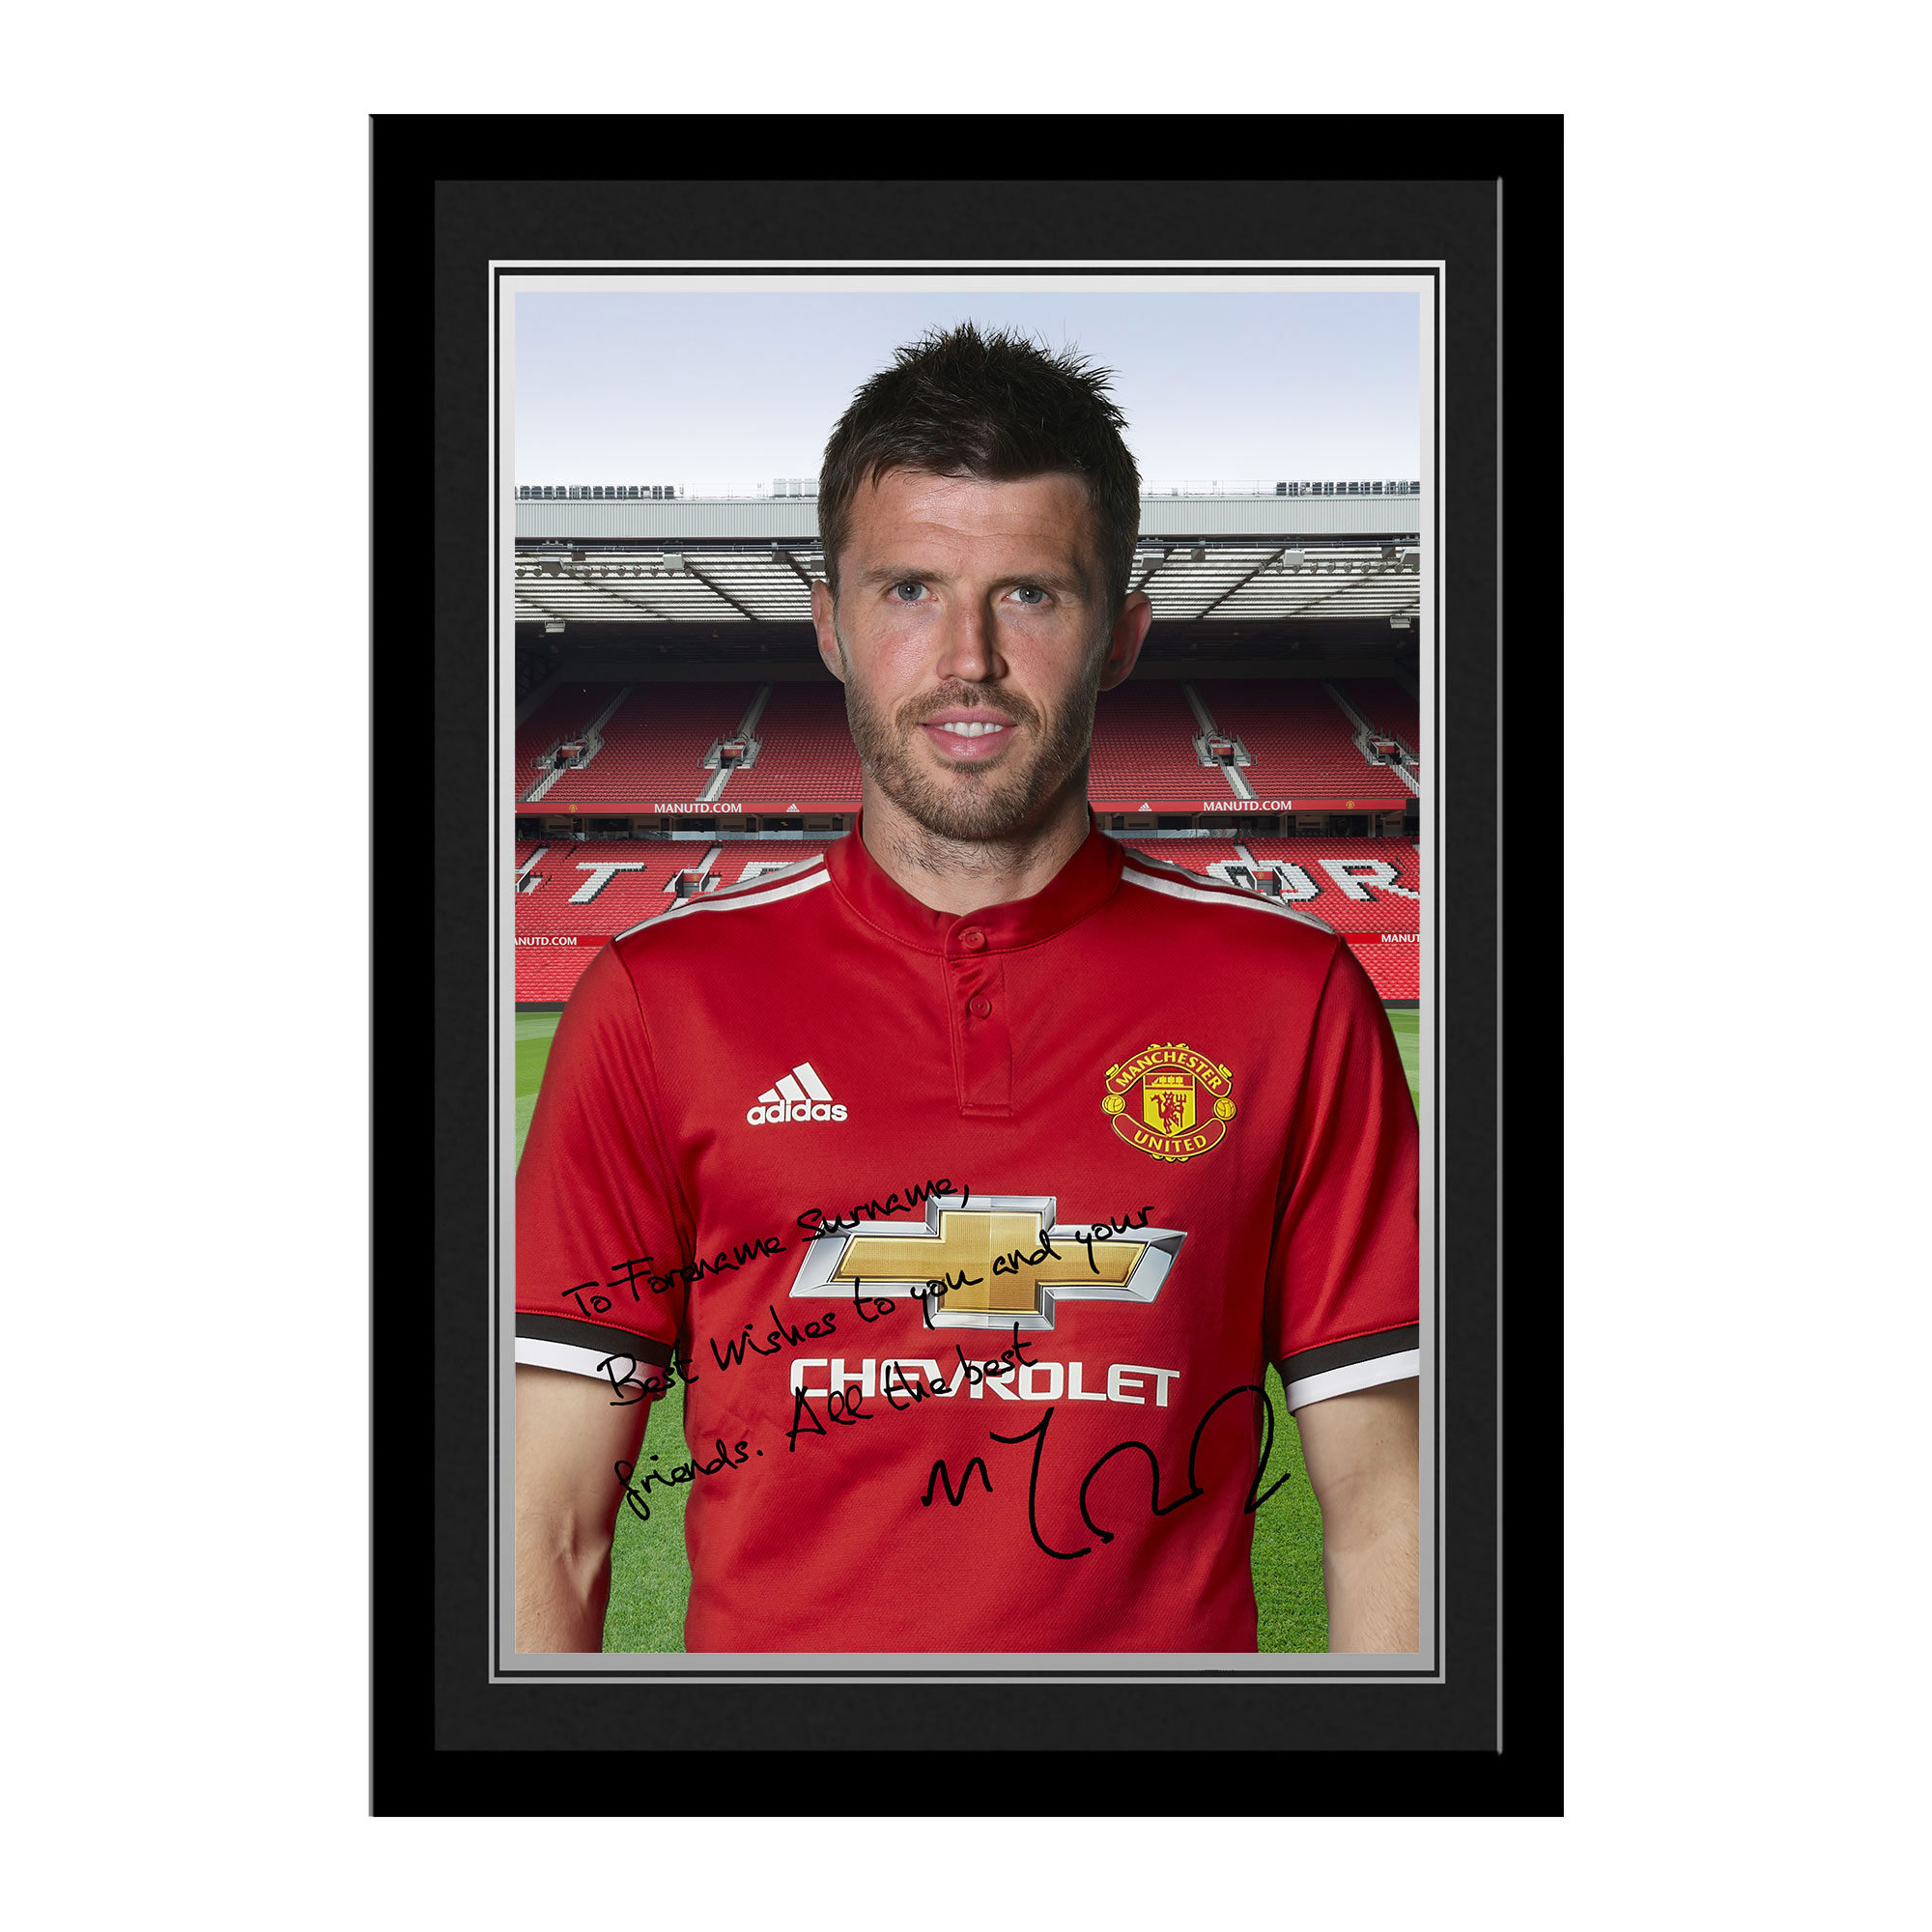 Manchester United Personalised Signature Photo Framed - Carrick